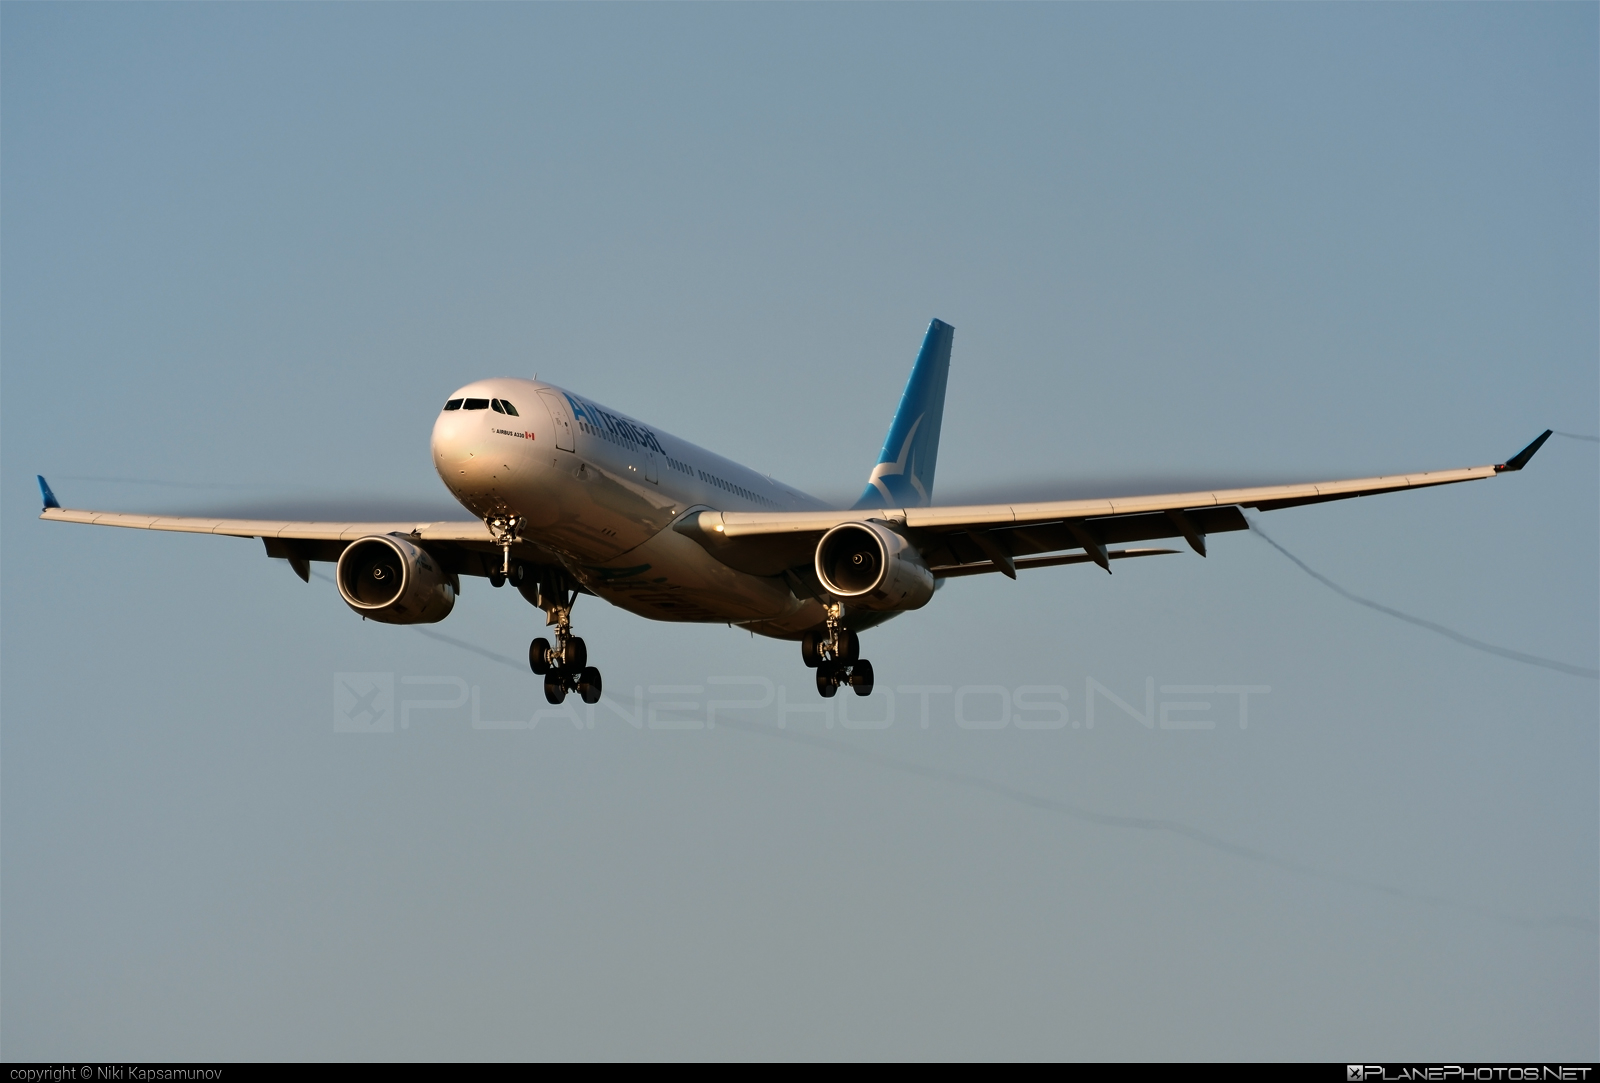 Airbus A330-243 - C-GUBF operated by Air Transat #a330 #a330family #airbus #airbus330